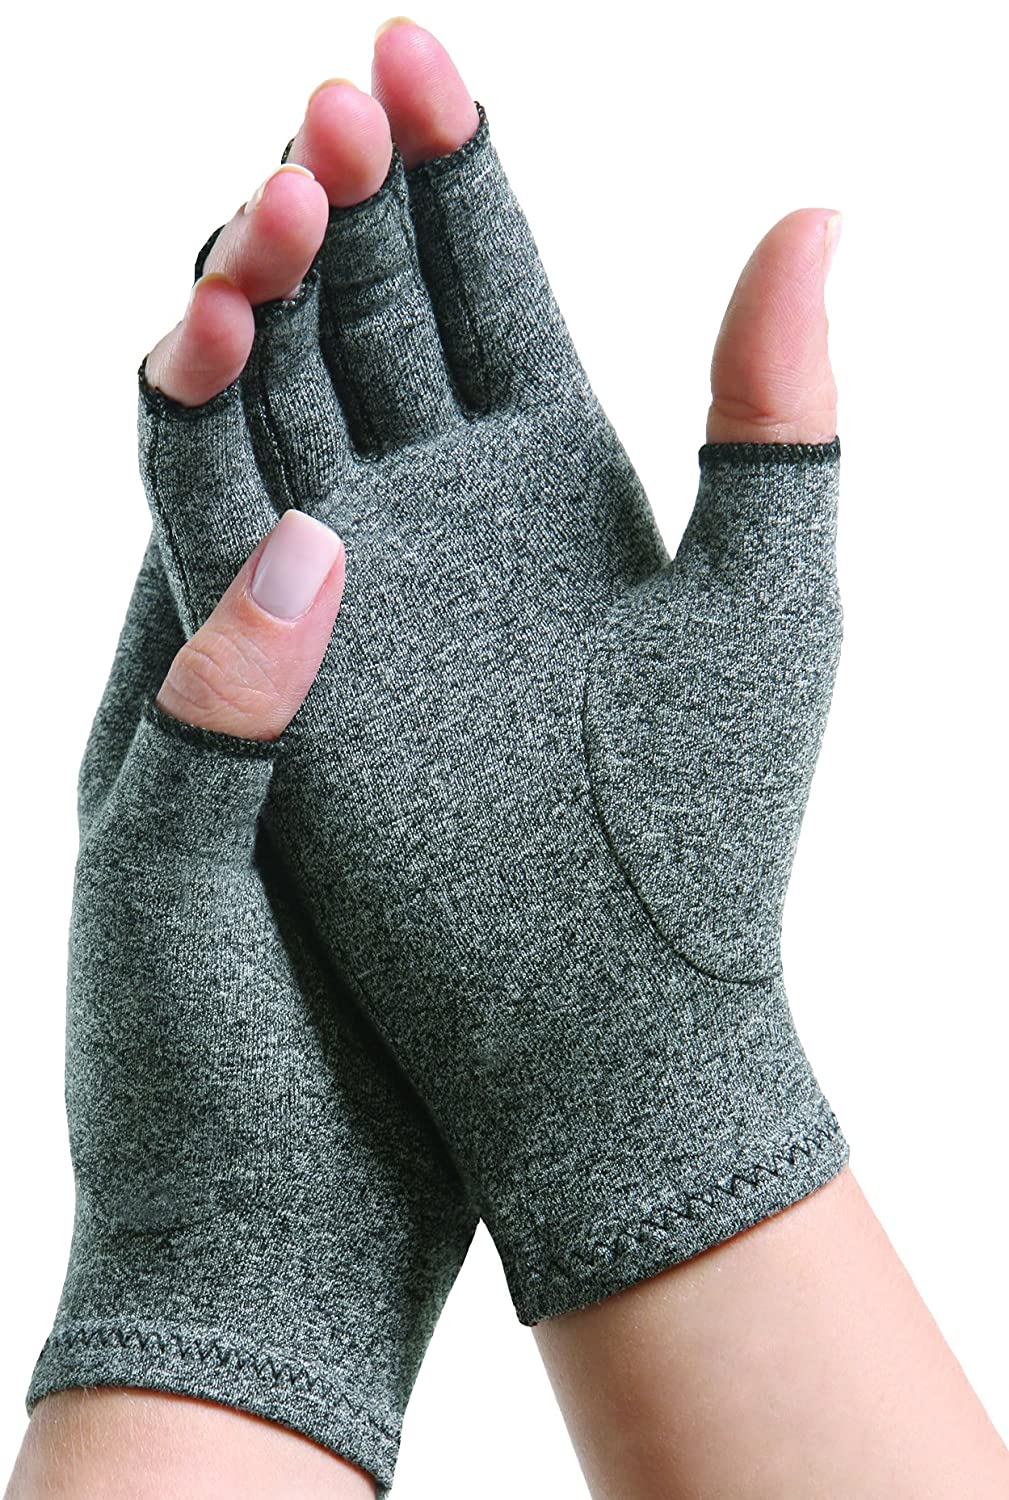 Motorcycle gloves carpal tunnel syndrome - Amazon Com Imak Hand Elbow Arthritis Gloves Size Large Health Personal Care